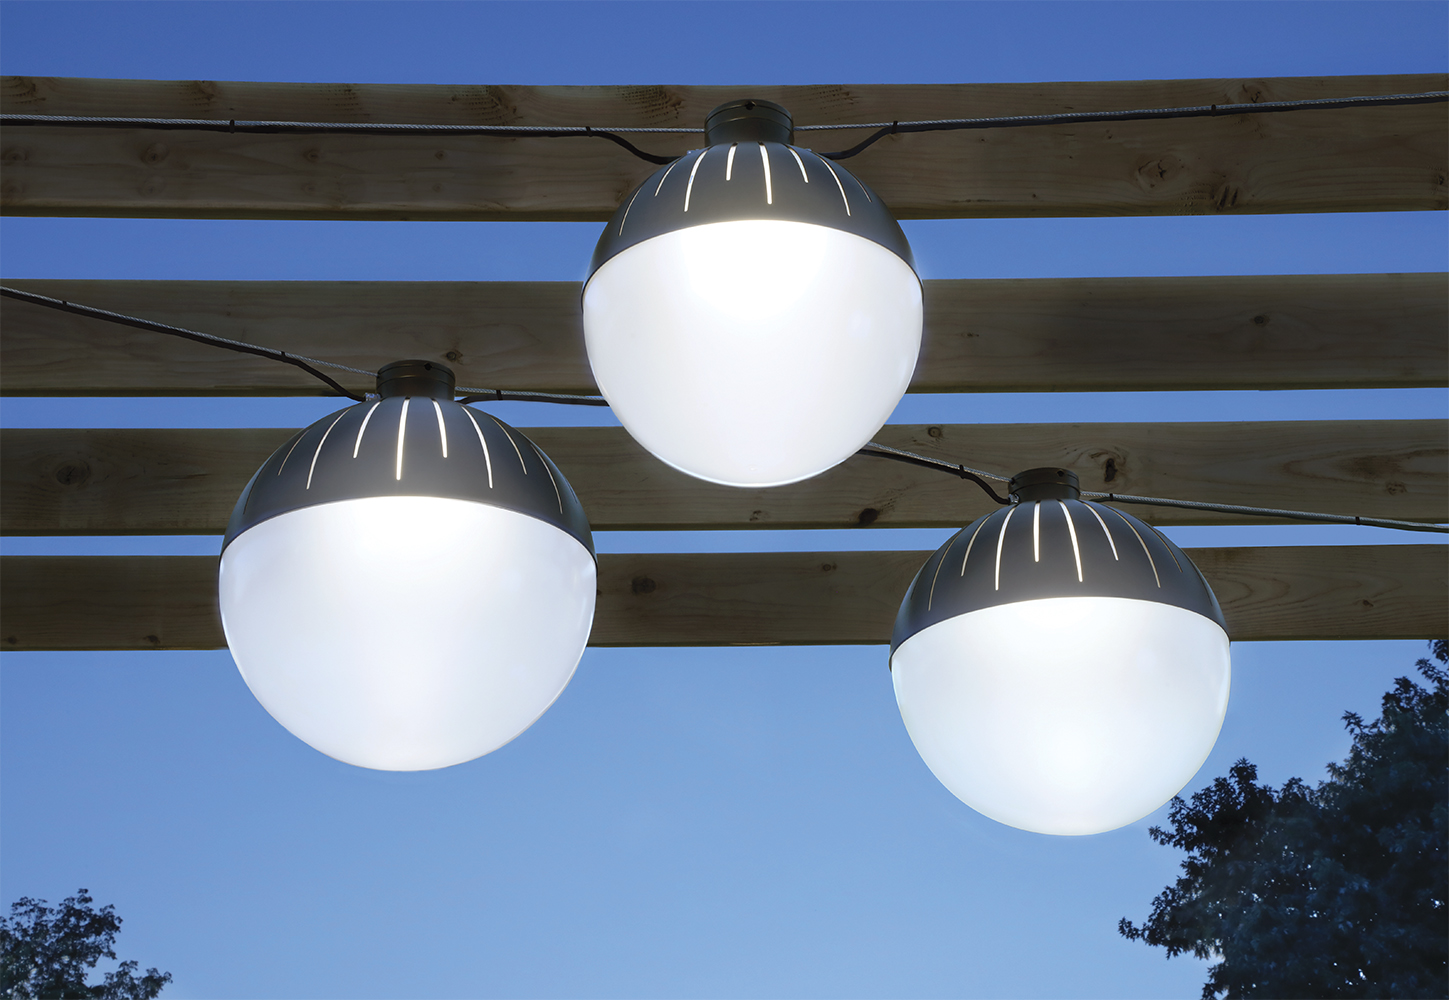 Zume outdoor light fixtures illuminate a wooden pergola structure below a darkening night sky and tall trees.